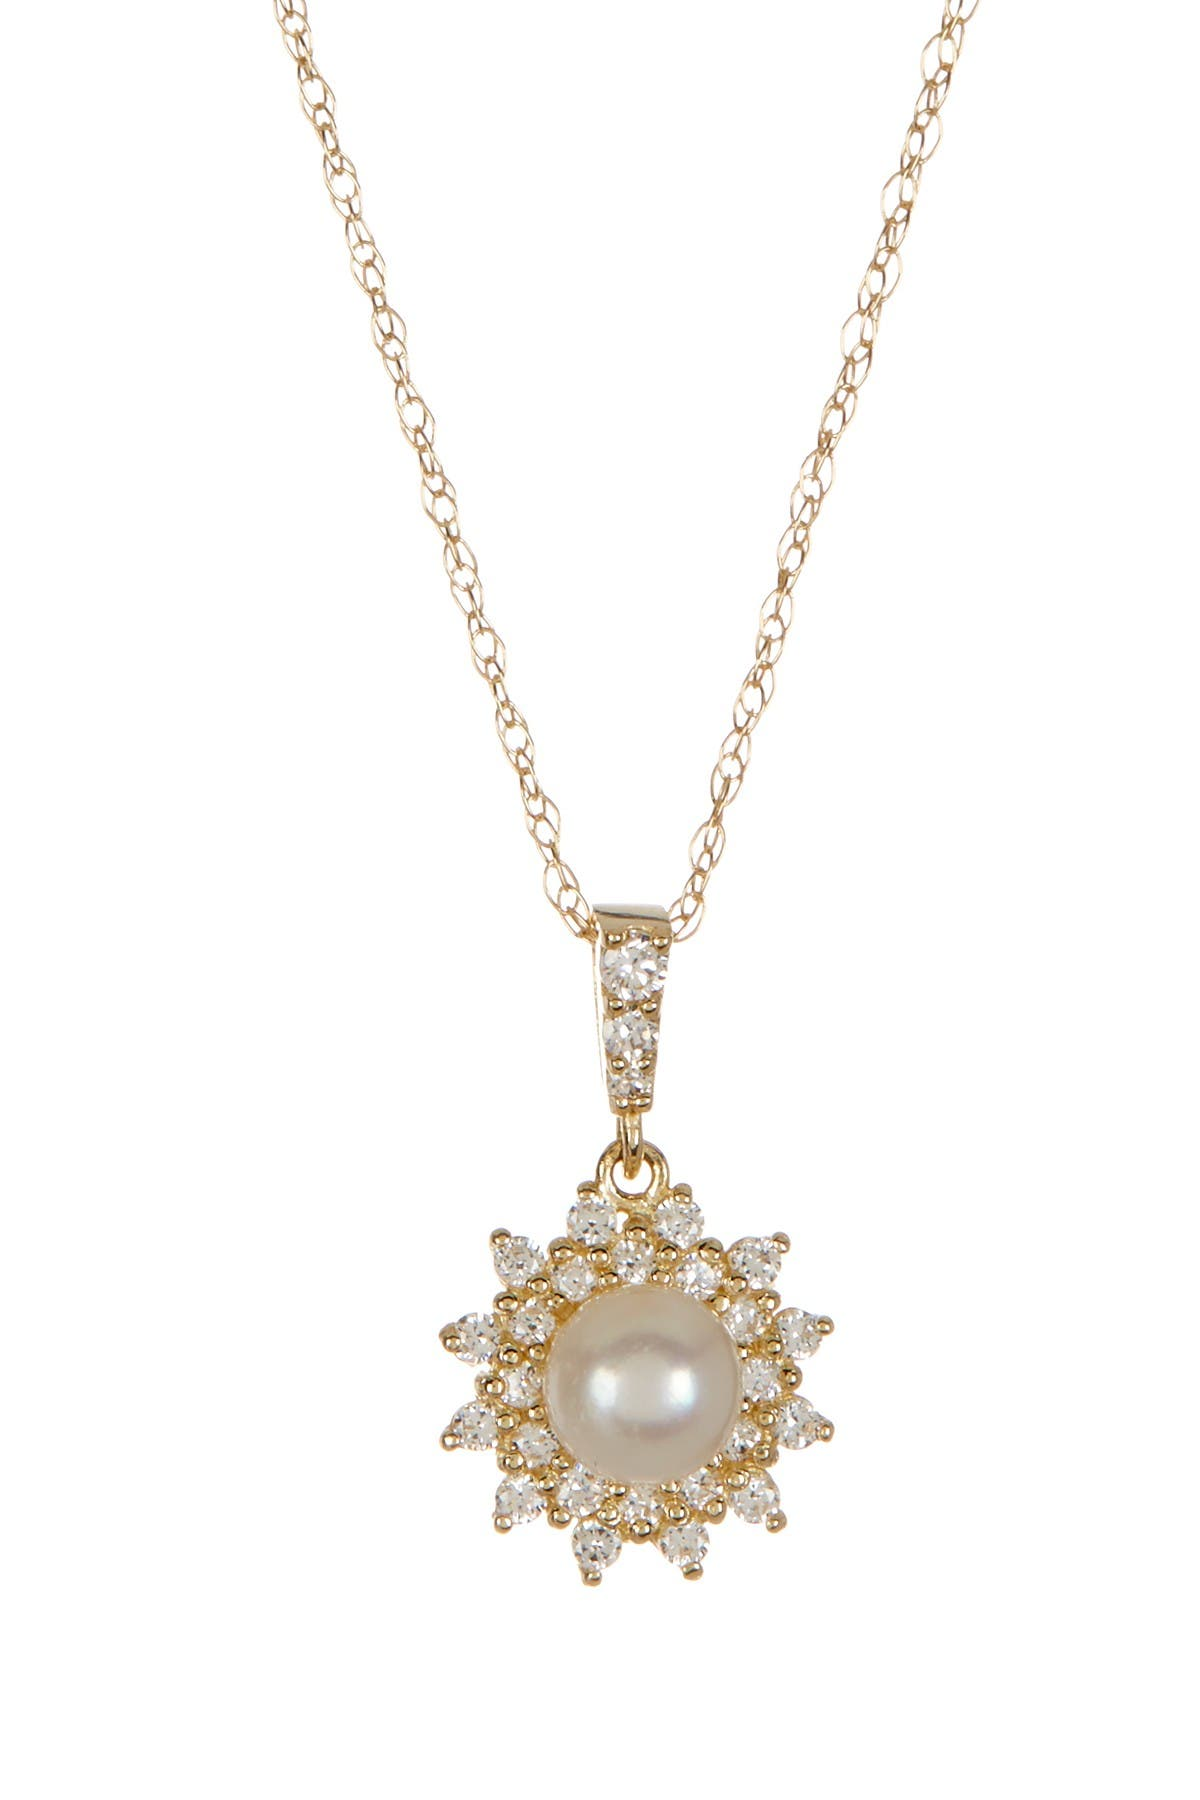 Image of Candela 10K Yellow Gold Petite CZ & 4mm Cultured Freshwater Pearl Necklace